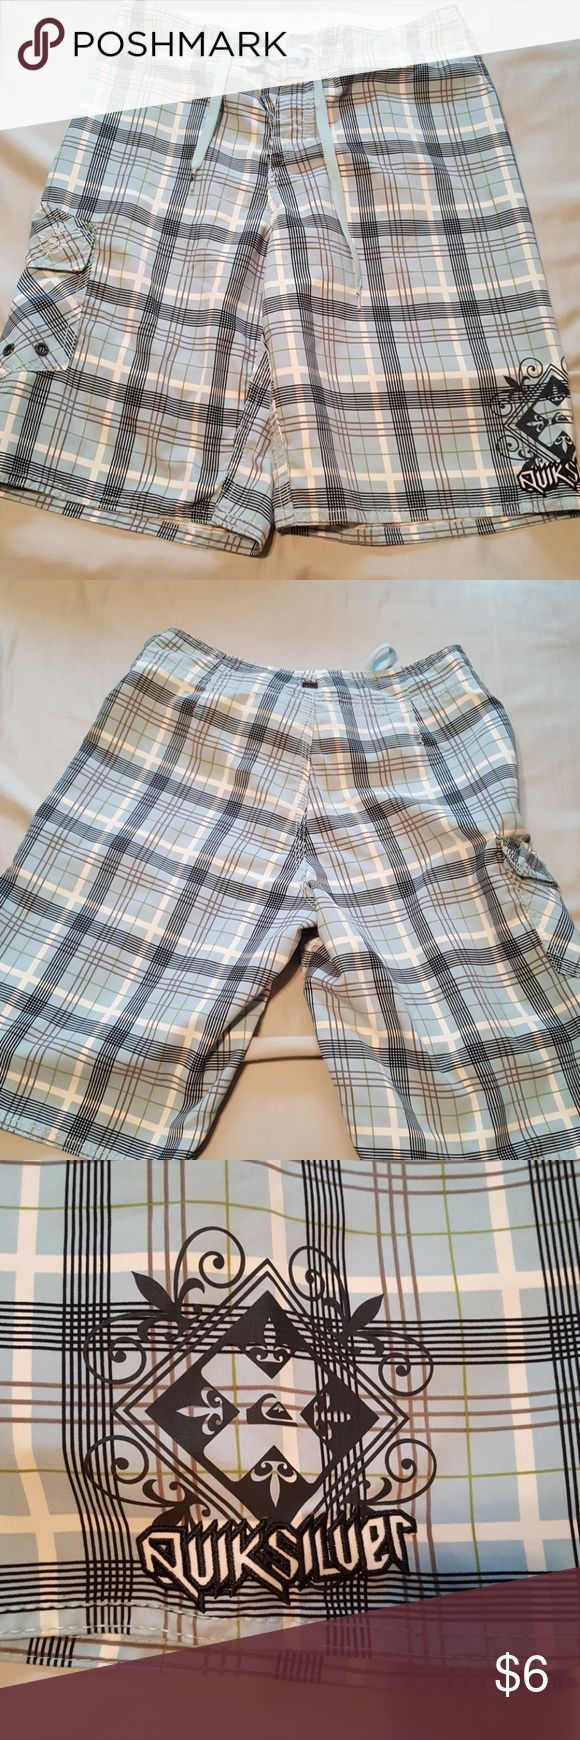 Quicksilver  boys shorts Tag has been vut out for comfort. EUC. Size large. Same day shipping!!! Quiksilver Bottoms Shorts